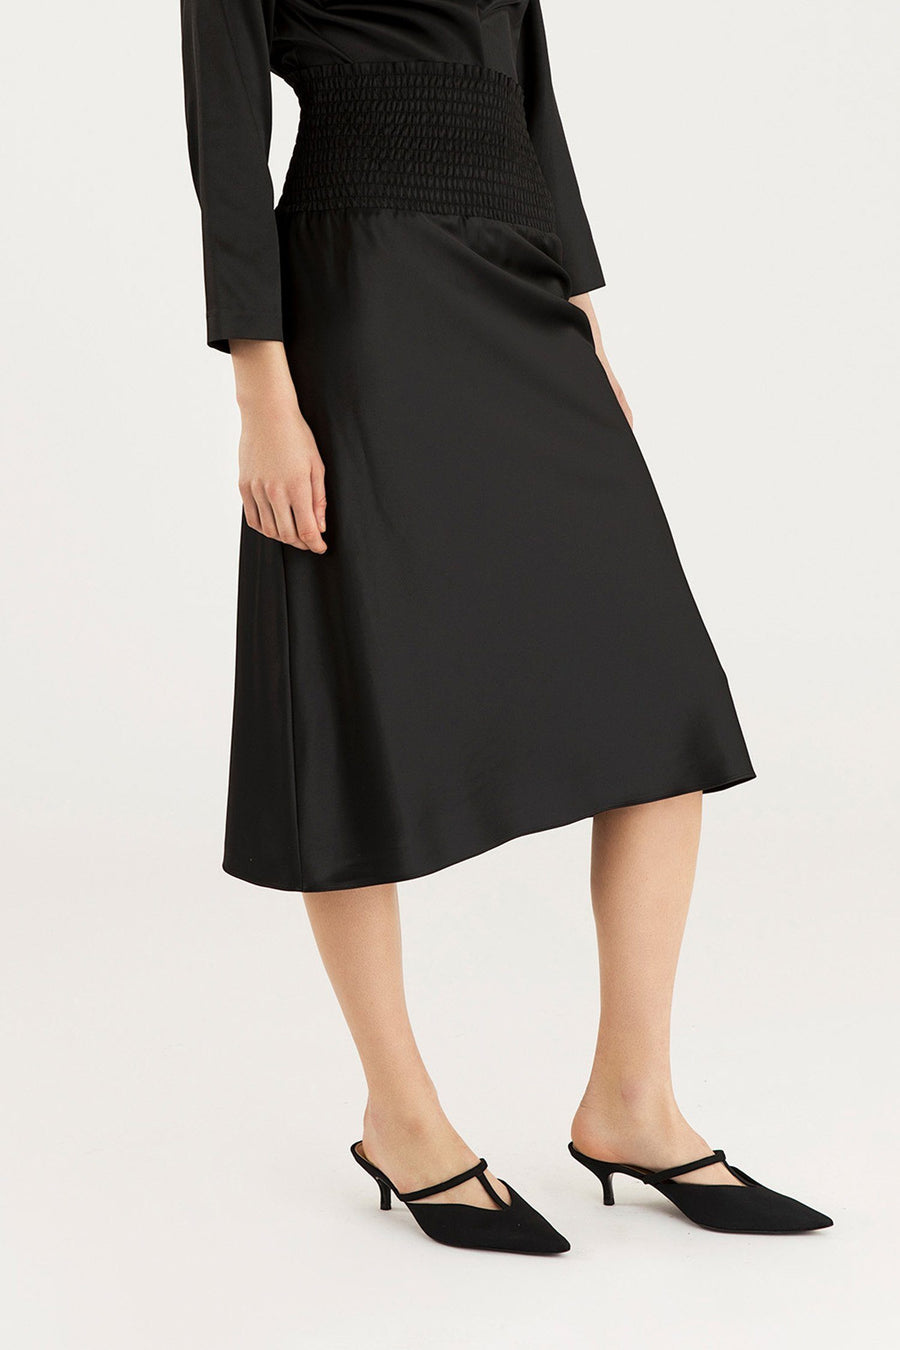 VERNA SKIRT - BLACK